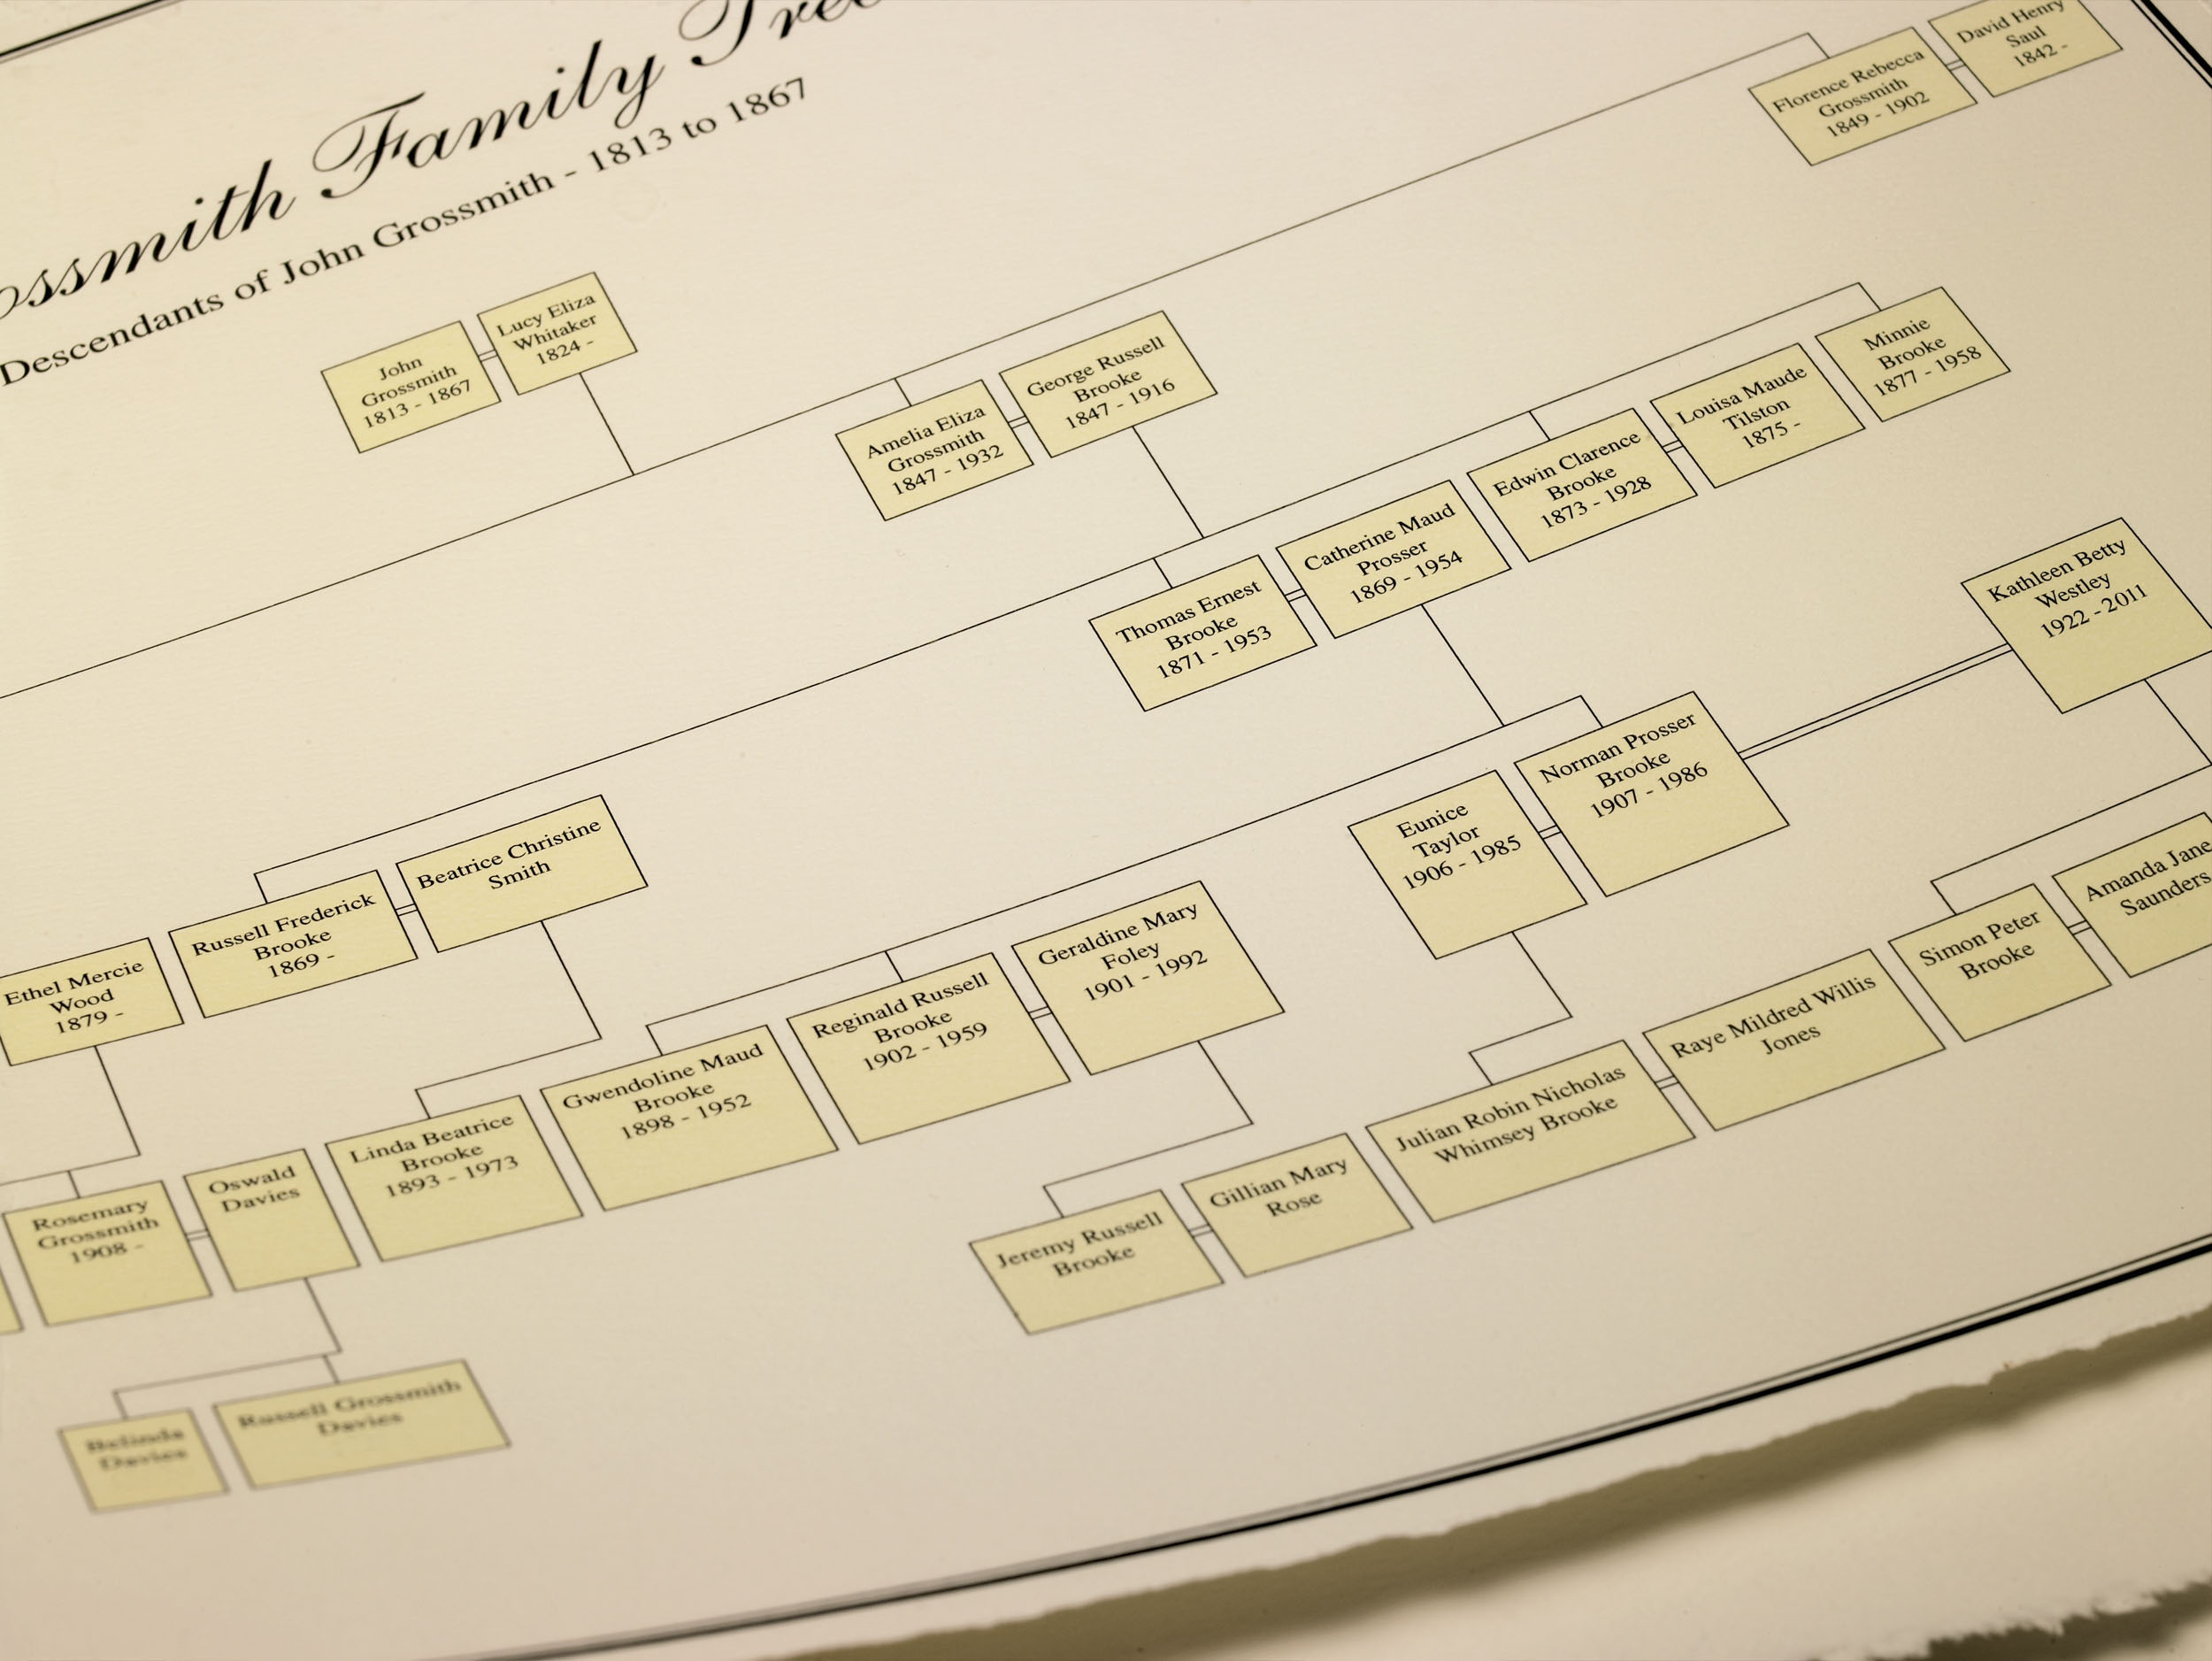 Grossmith Family Tree